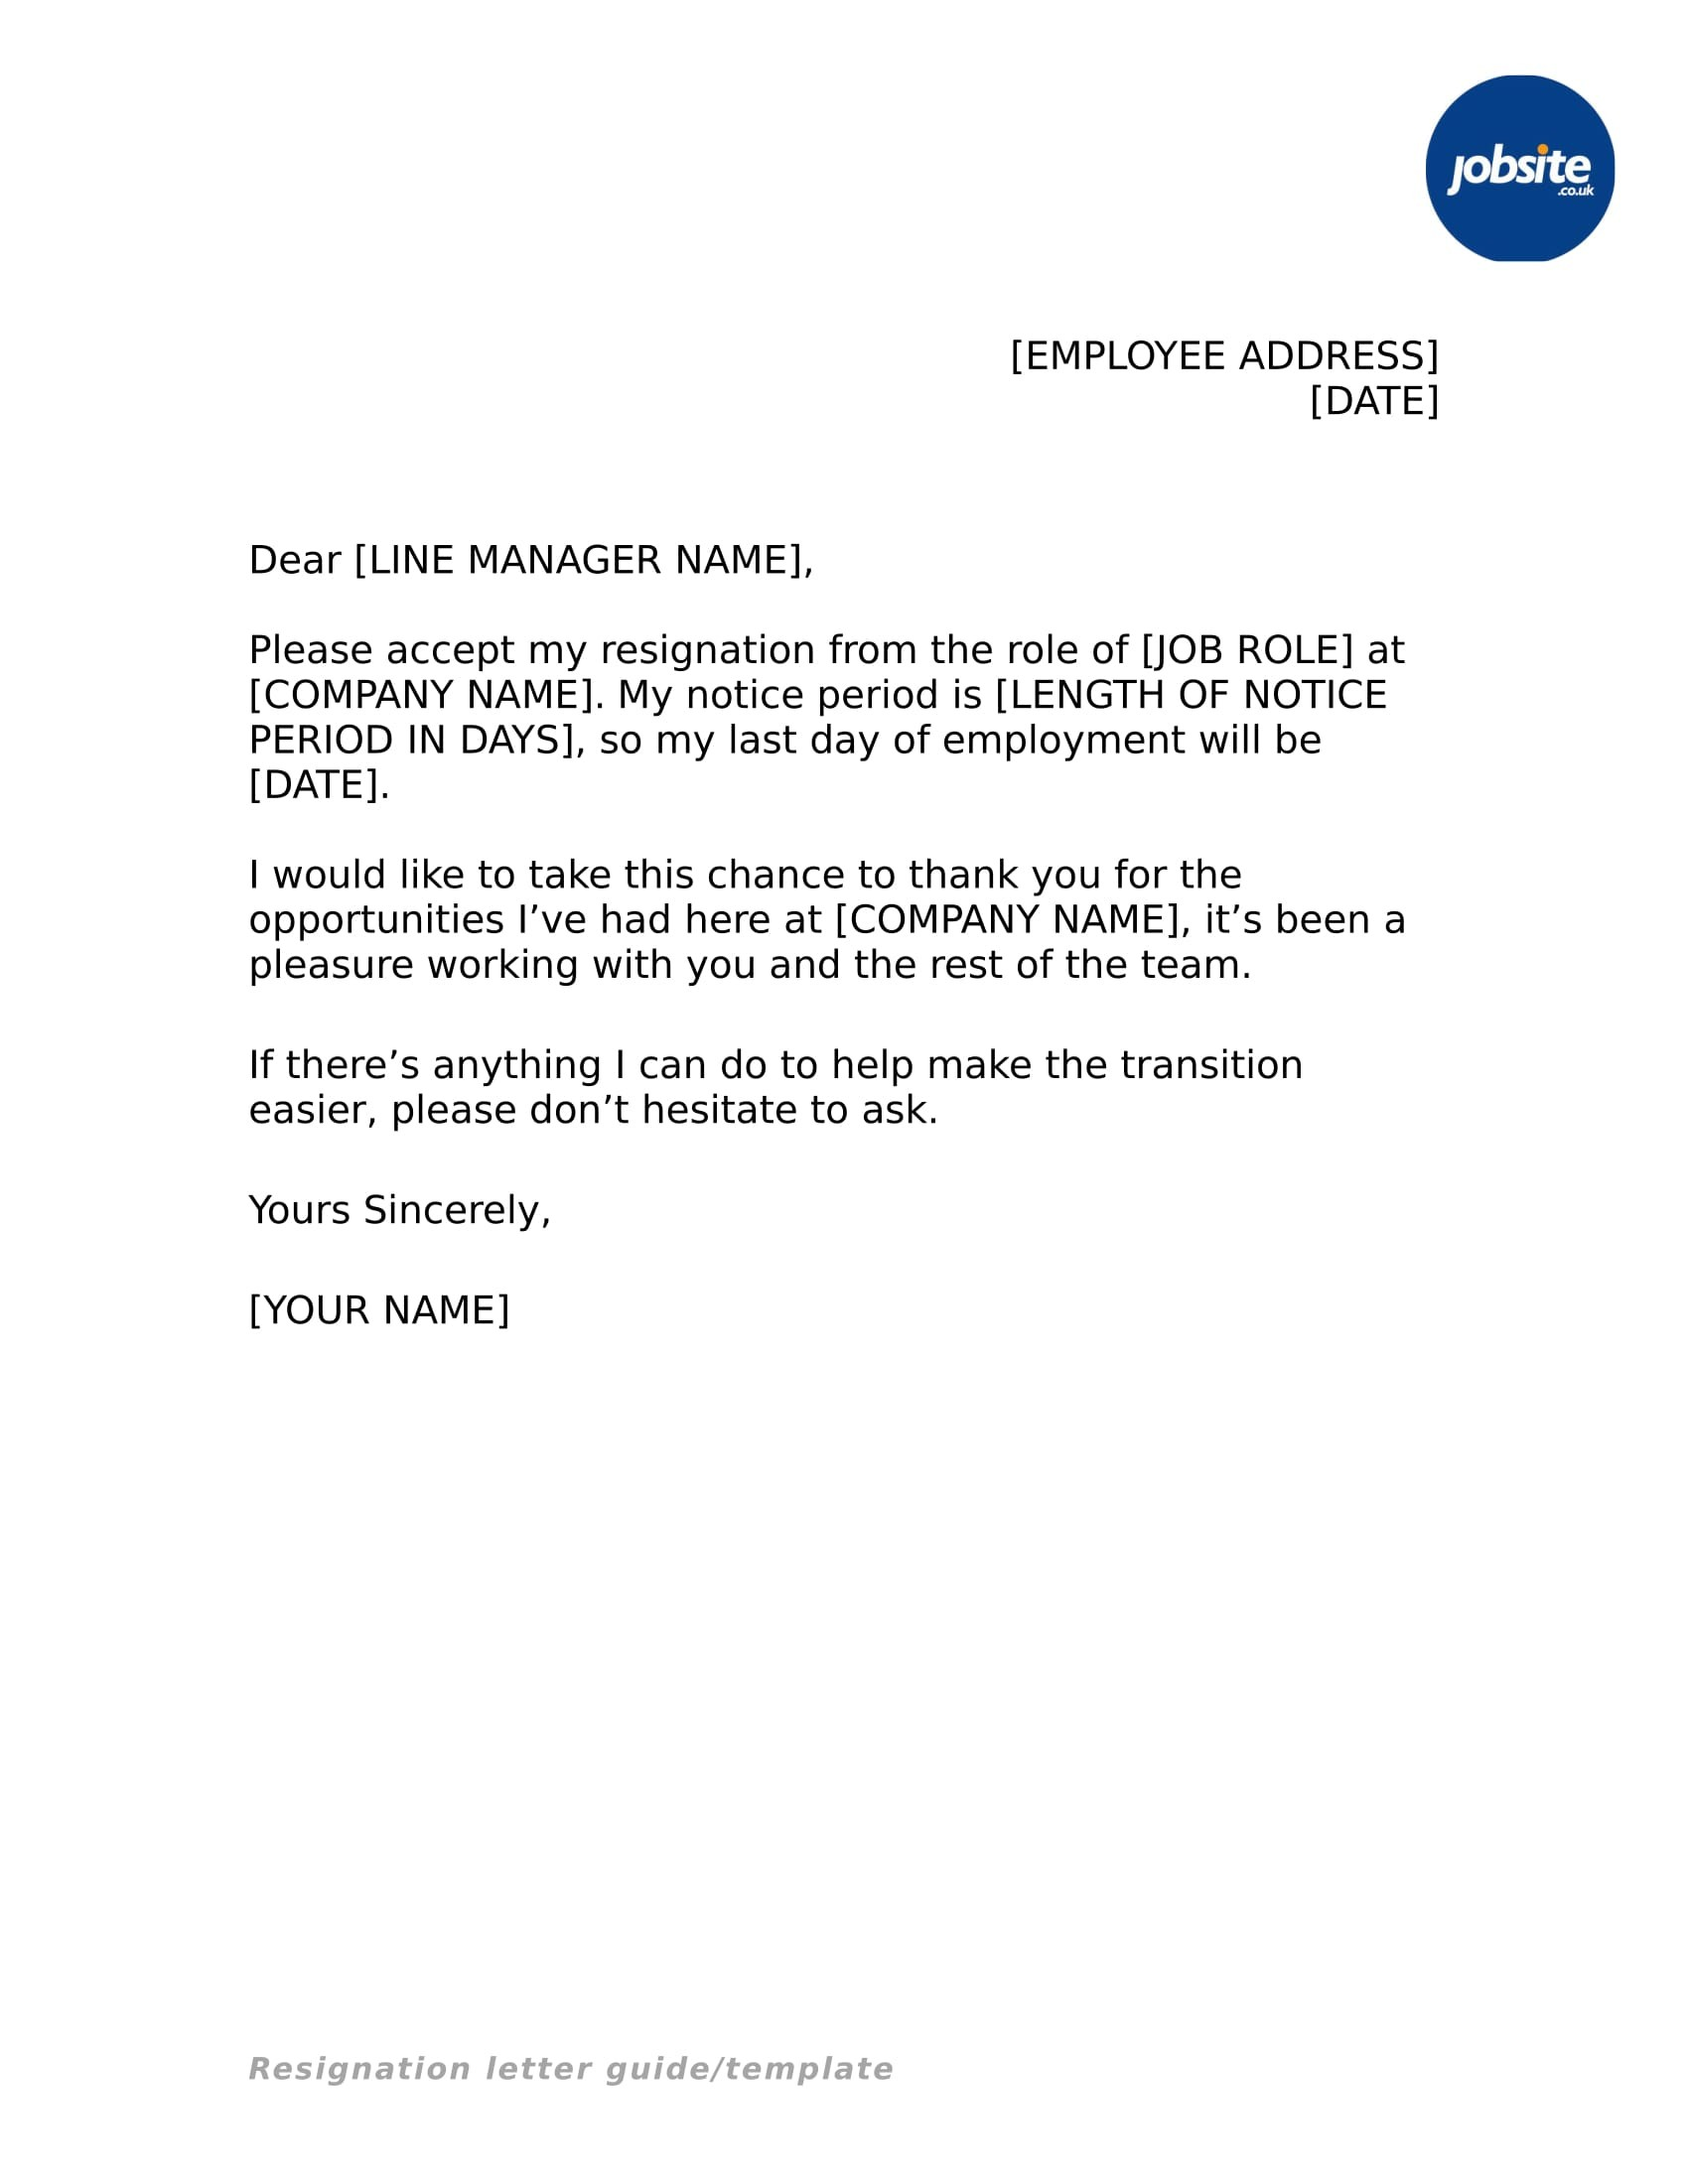 resignation letter very simple  35+ Simple Resignation Letter Examples - PDF, Word | Examples - resignation letter very simple